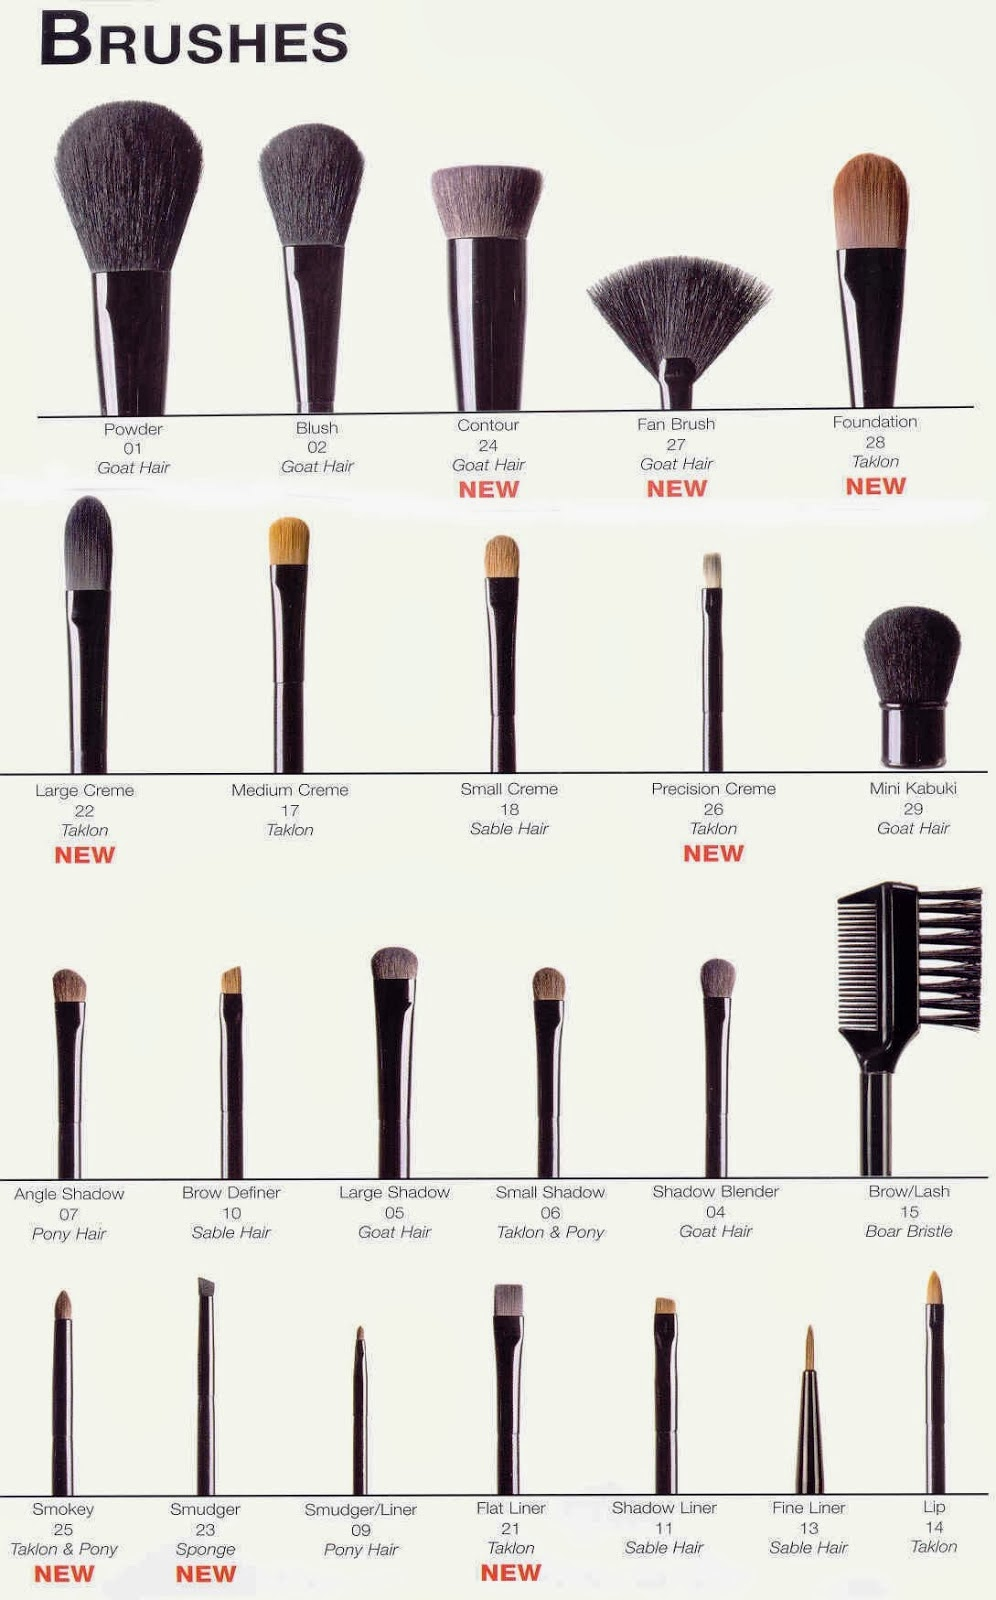 bobbi brown brushes uses. makeup brushes and their uses bobbi brown